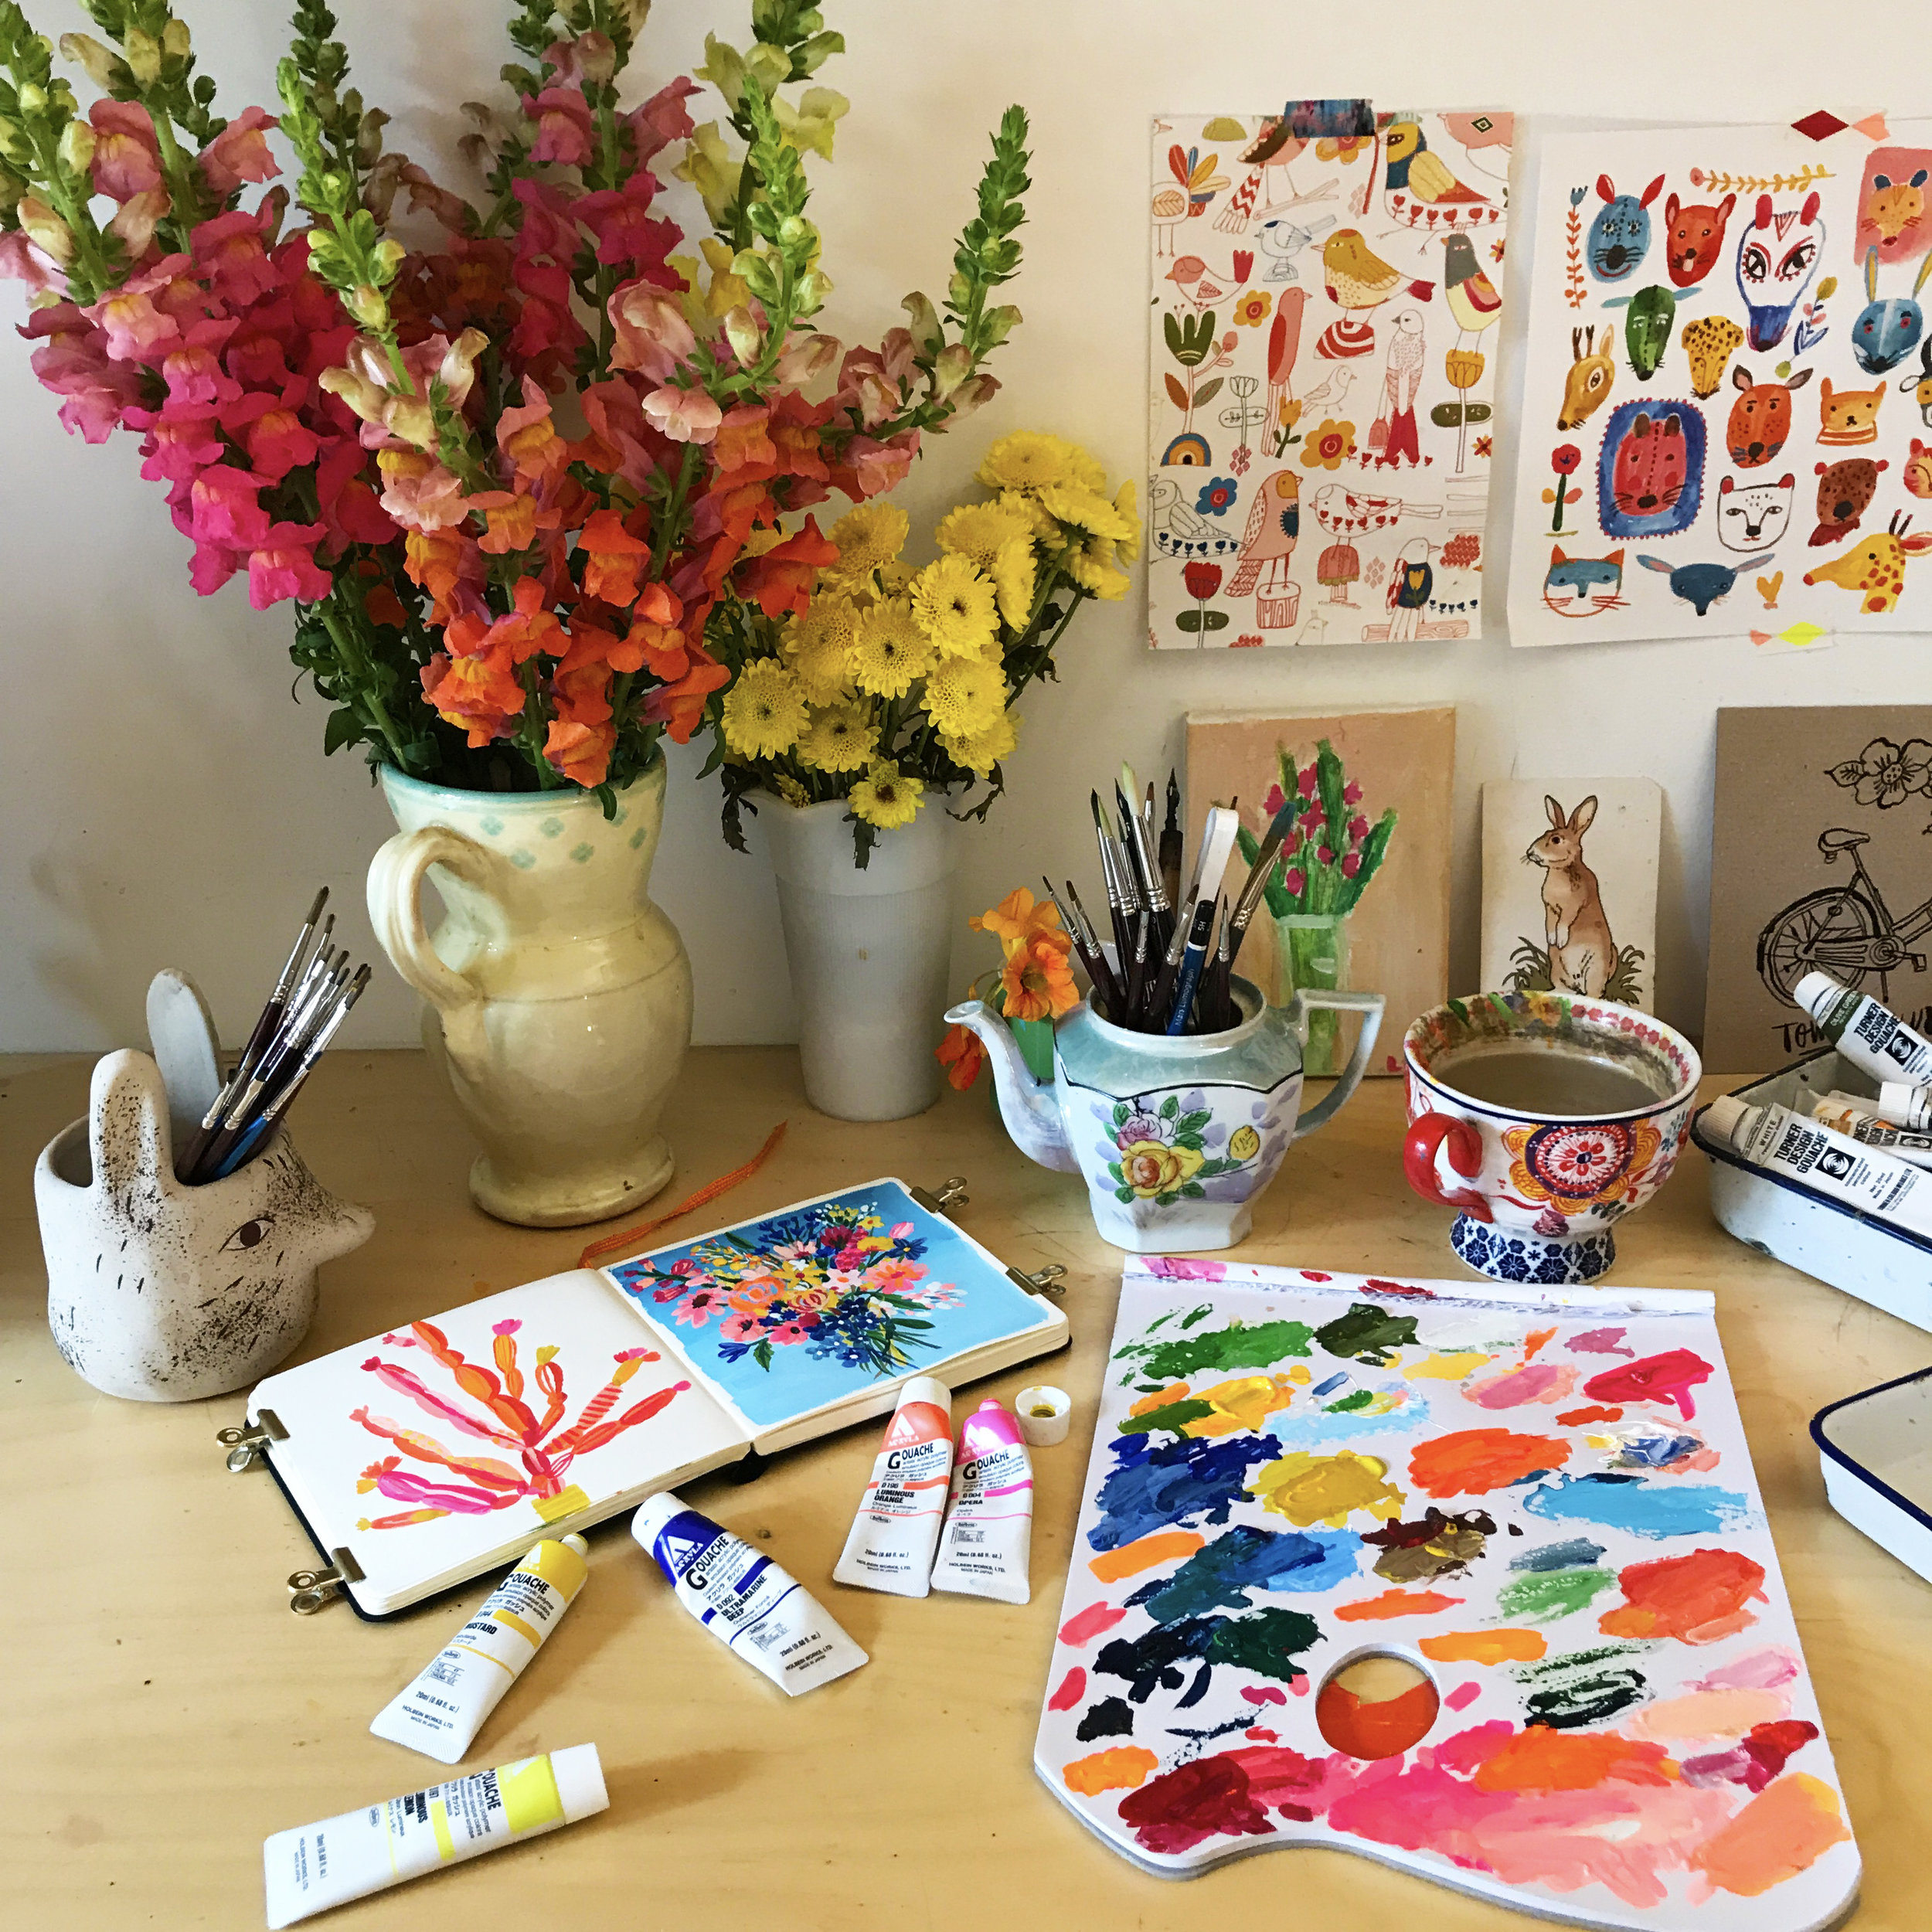 12:00 pm - I then went inside to the studio and setup the camera to make a timelapse demo video. I made 3 that day - the succulents, the Snapdragons and a bouquet on blue. I jump back and forth between Gouache and Watercolour depending on my mood, subject matter and inspiration.